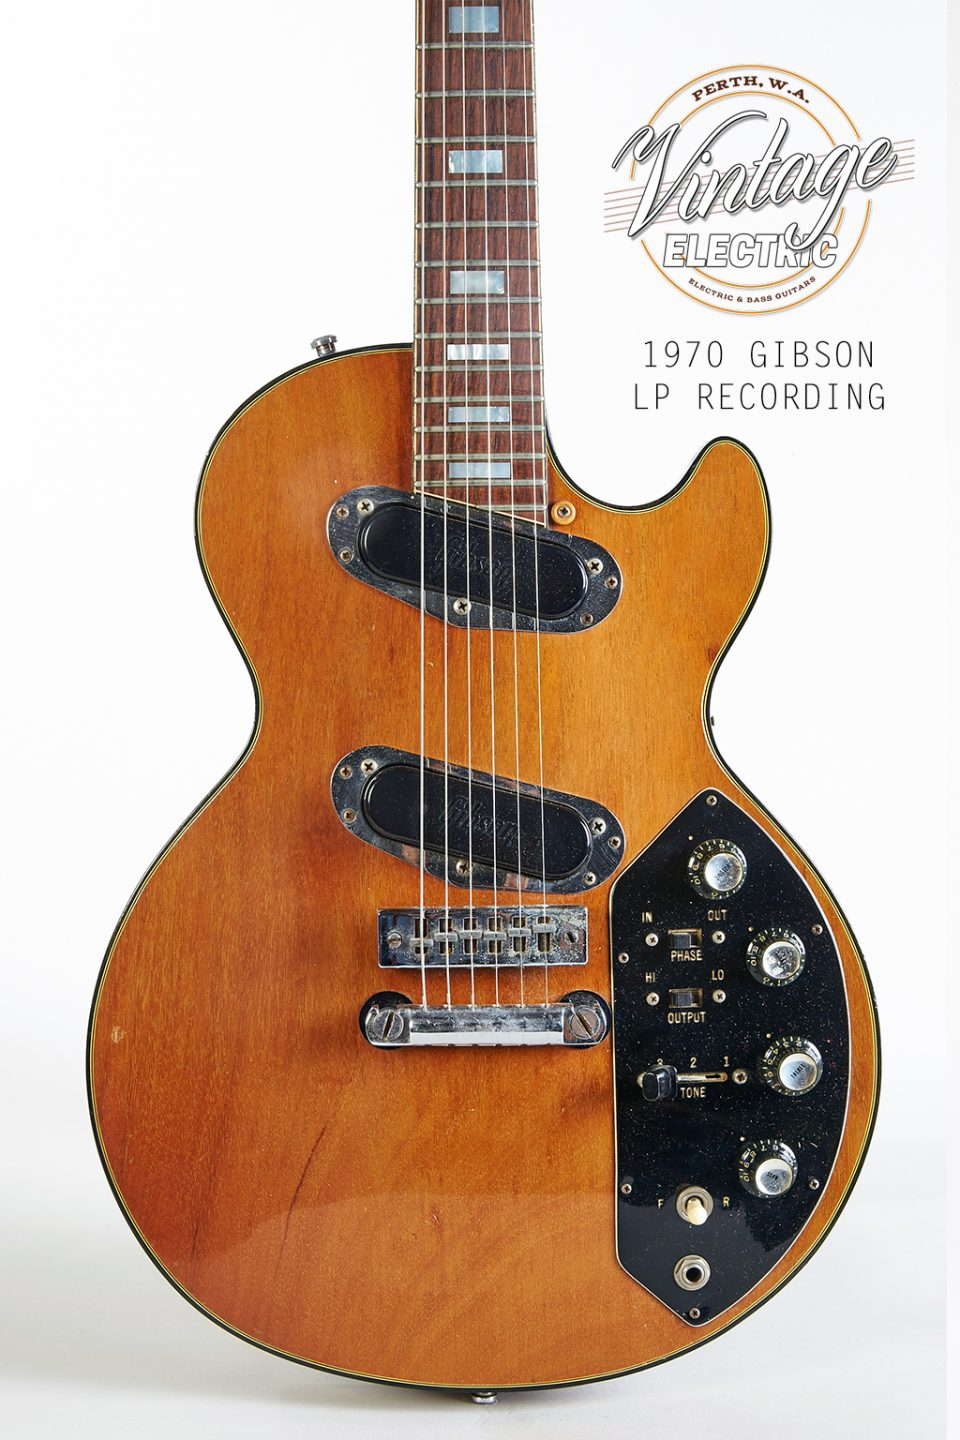 1970 Gibson Les Paul Recording Body